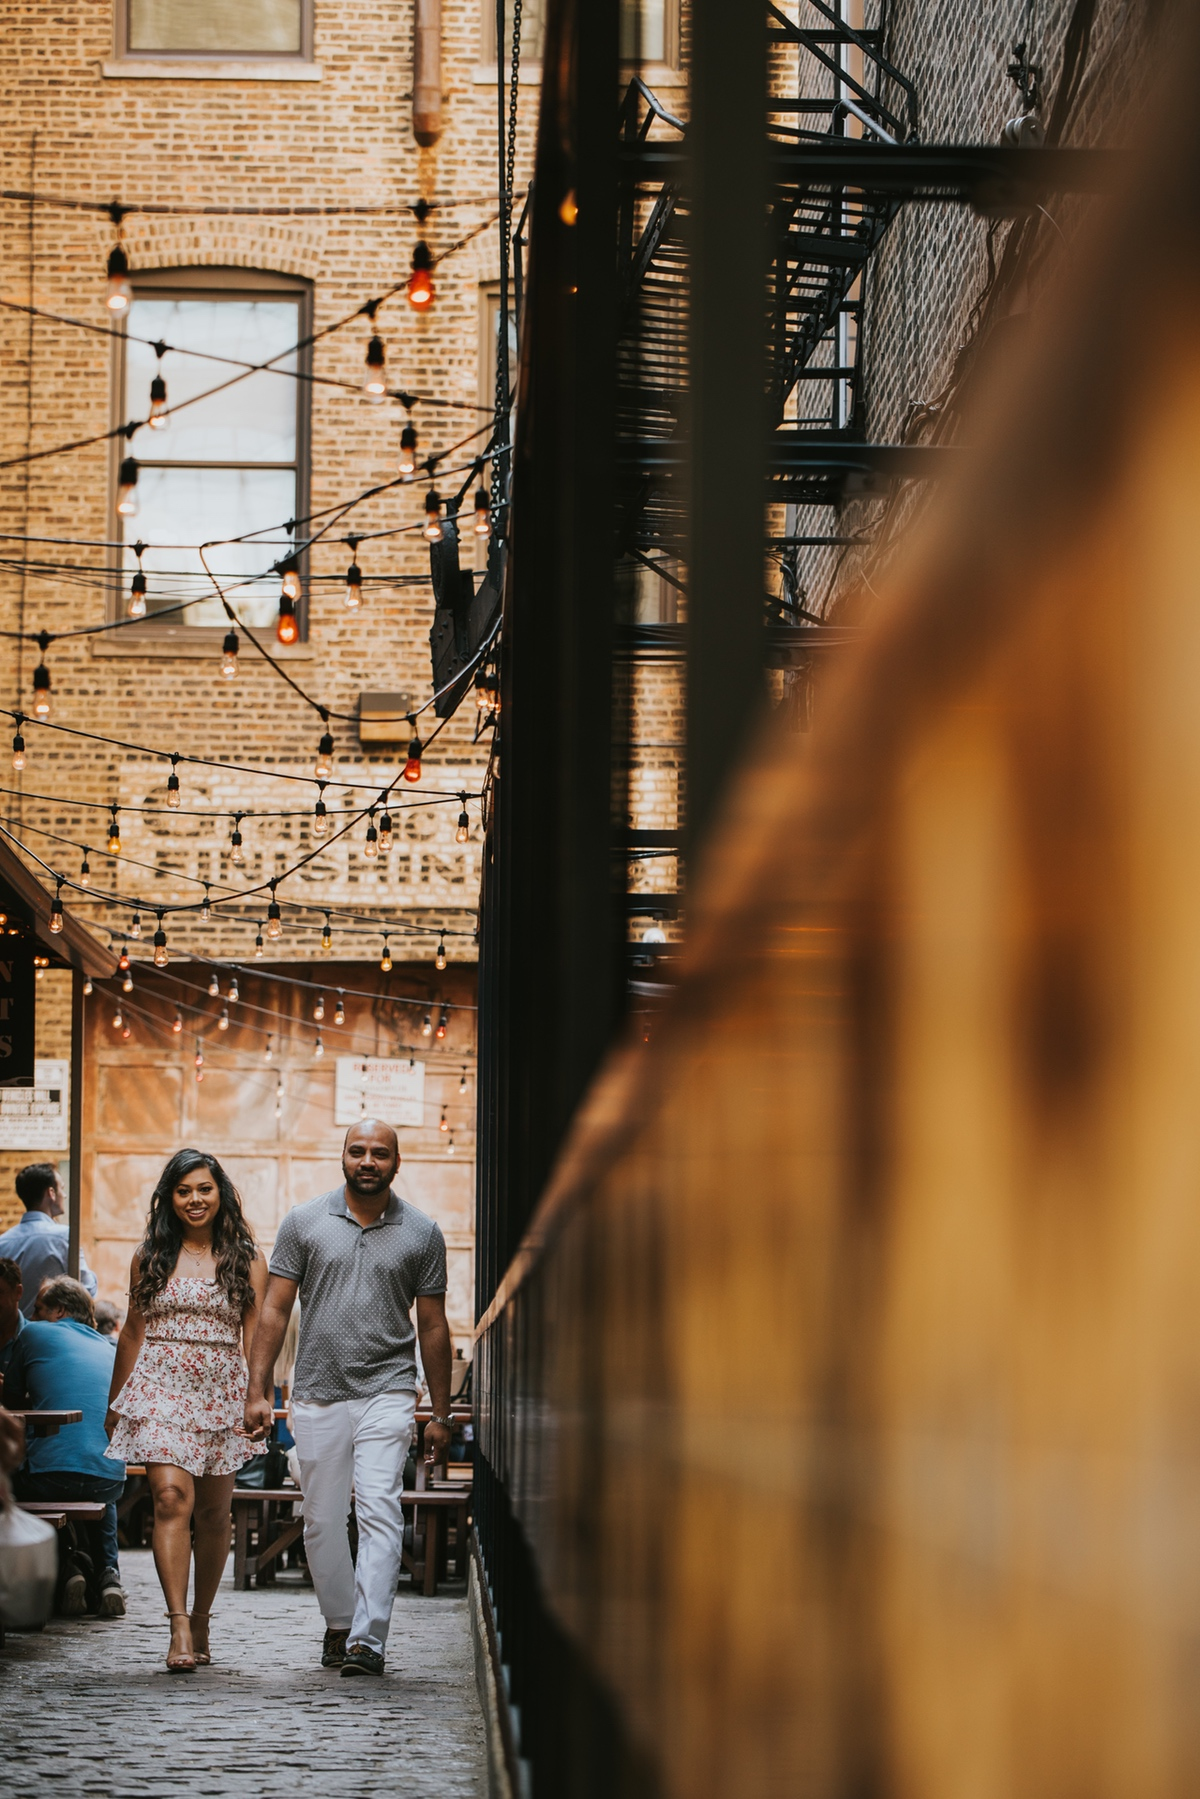 Le Cape Weddings - Engagement Session in Chicago - Brinjal-2.jpg